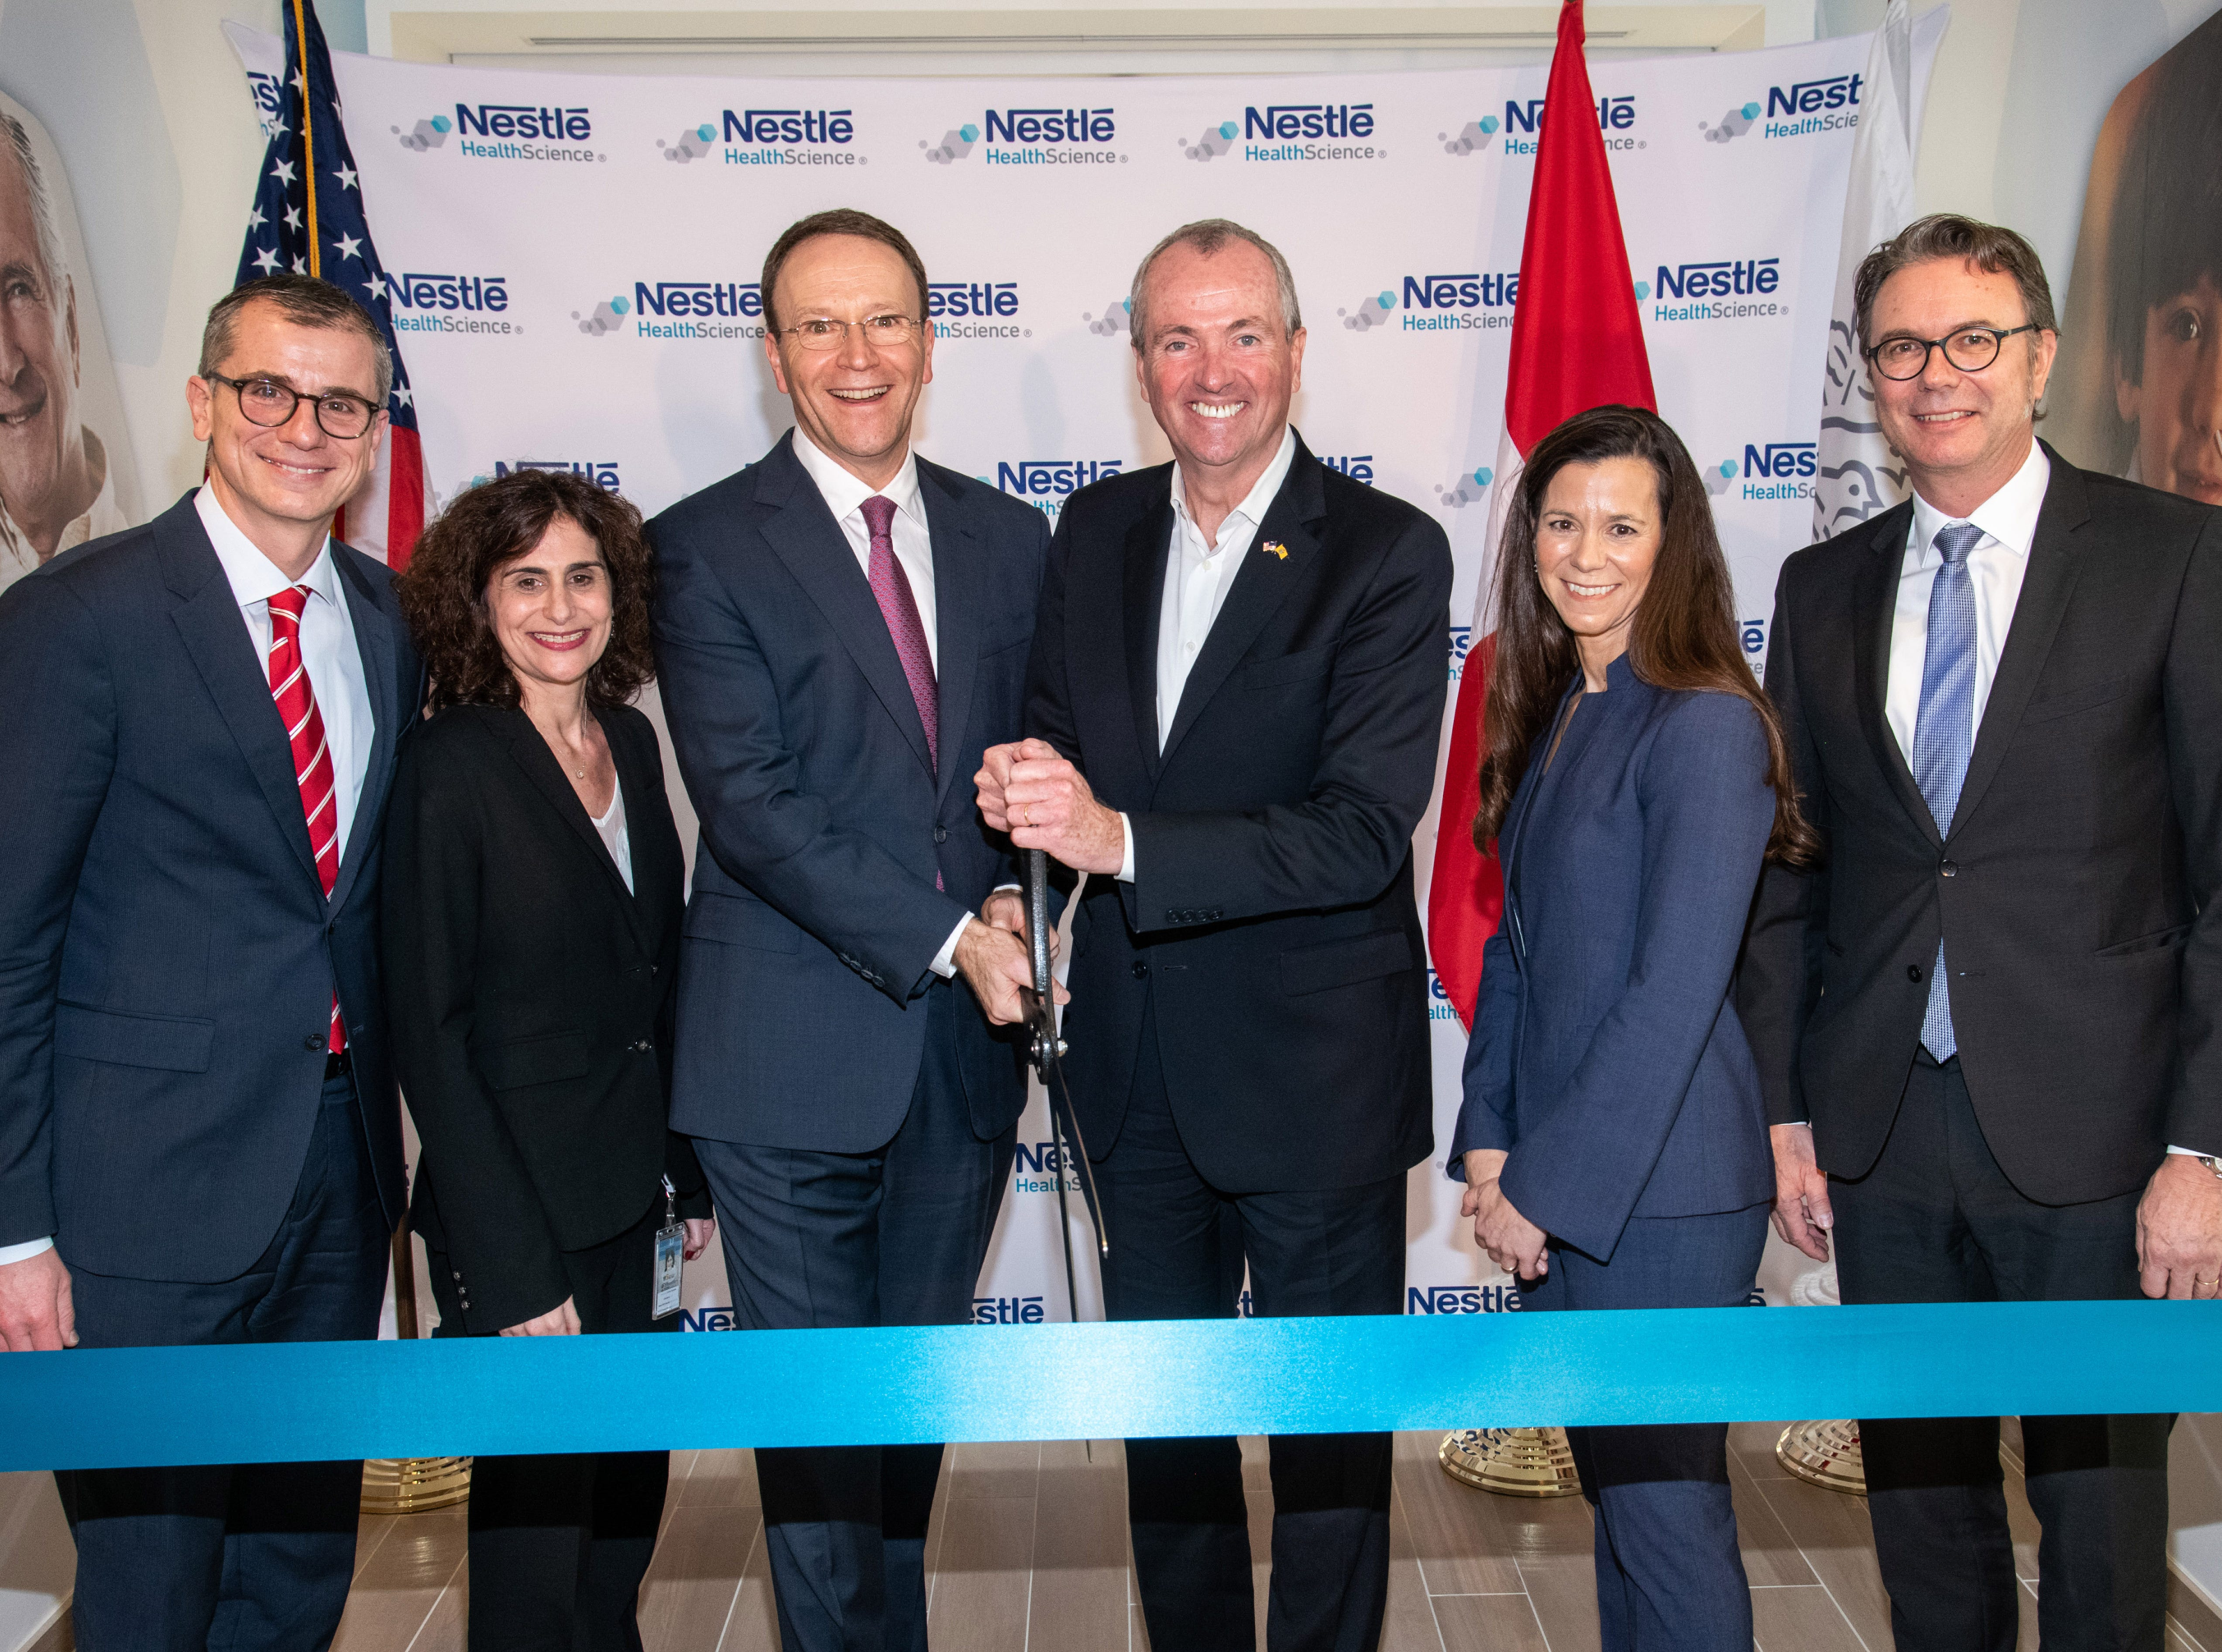 From left to right, Greg Behar, CEO, Nestlé Health Science S.A., Anna Mohl, BEO, Nestlé Health Science U.S., Mark Schneider, CEO, Nestlé S.A., Phil Murphy, Governor of New Jersey, Susan Haid, Head of Nestlé Product Technology Center, Nestlé Health Science and Thomas Hauser, SVP, Head of Global Product & Technology Development, Nestlé S.A. cut the ribbon at the inauguration of Nestlé Health Science's Product Technology Center on Monday, Dec. 3, 2018 in Bridgewater, N.J. (Charles Sykes/AP Images for Nestlé)